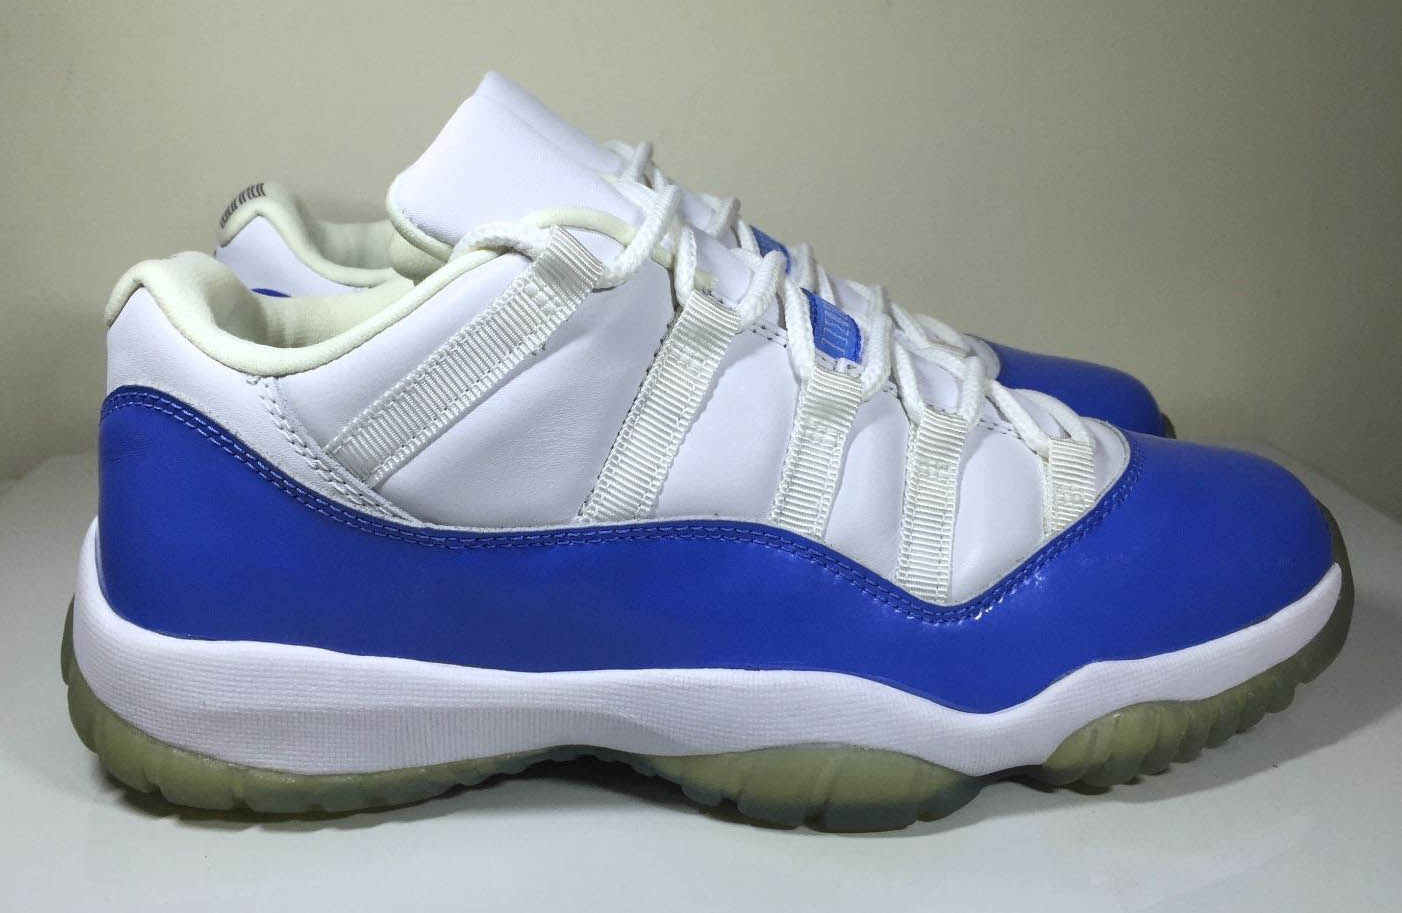 71266dadefb Air Jordan 11 Low Columbia Archives - Air Jordans, Release Dates & More |  JordansDaily.com